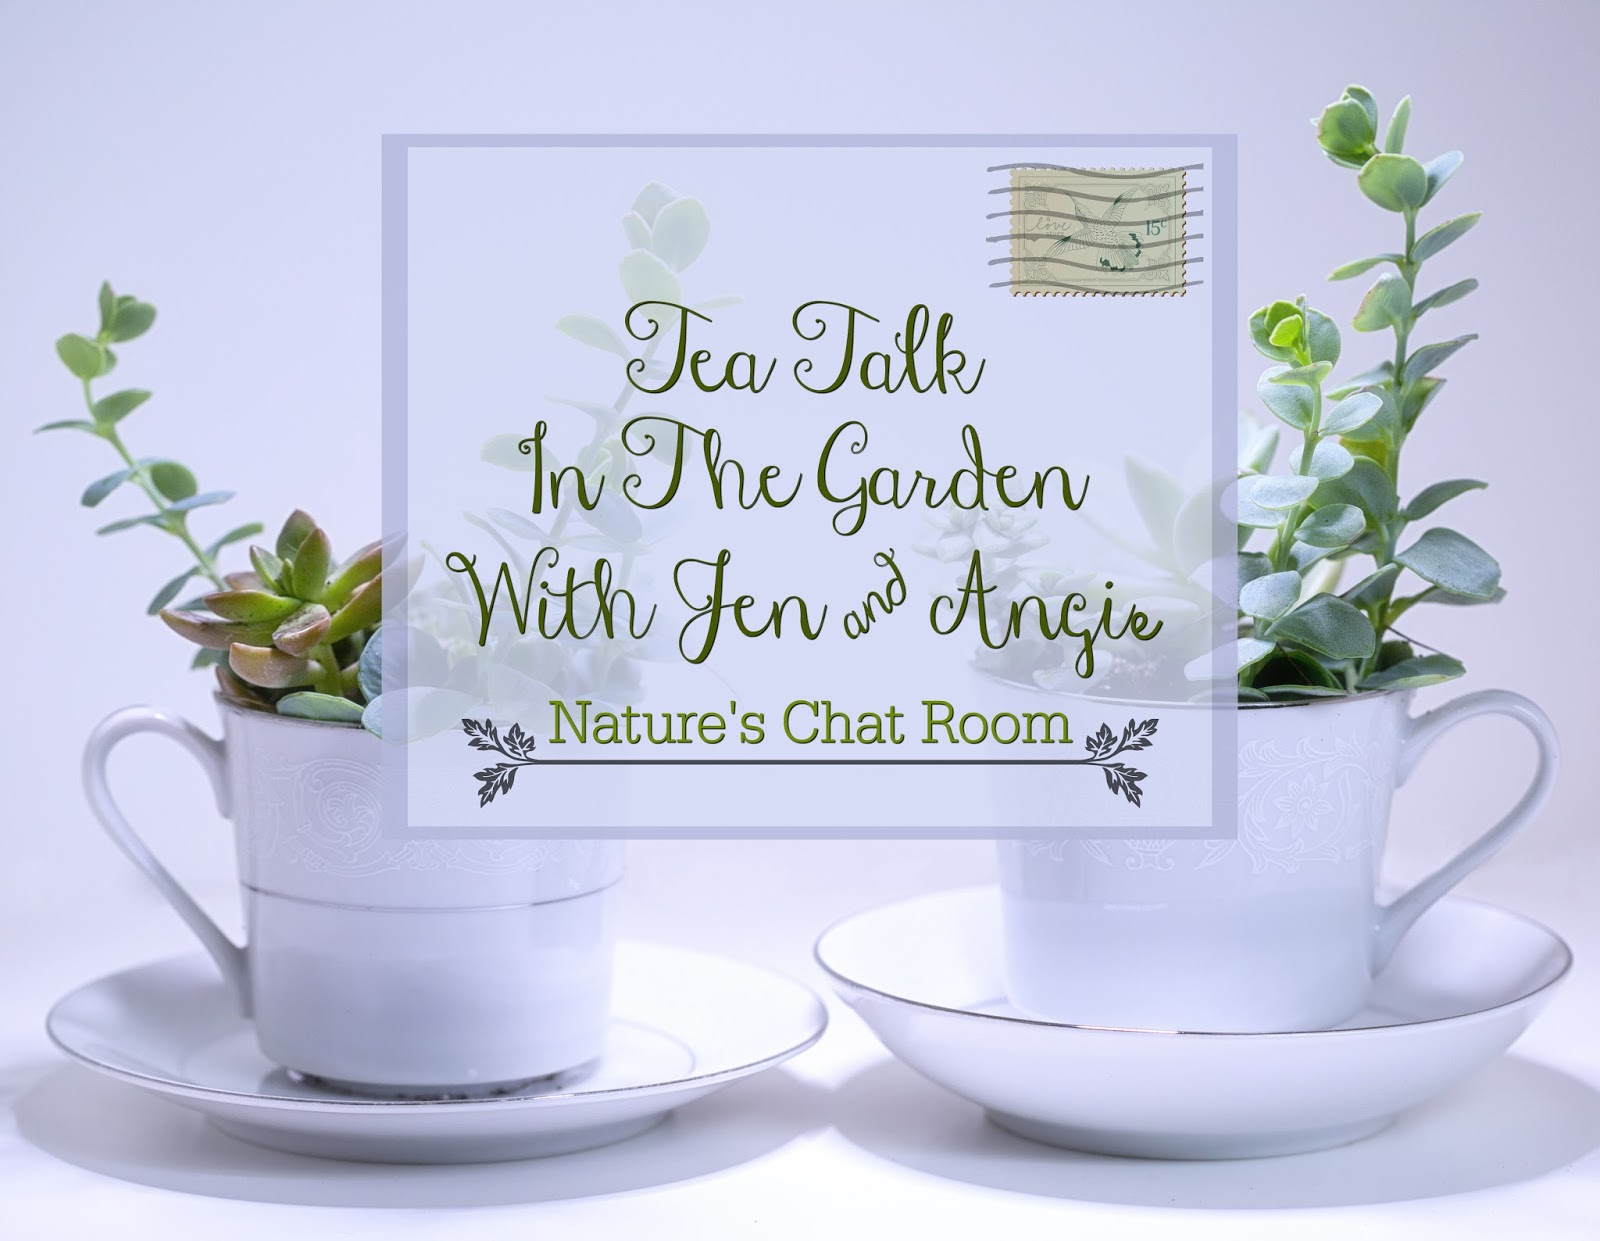 its time for tea talk in the garden the new blog series thats a virtual letter exchange between myself and my friend angie each month